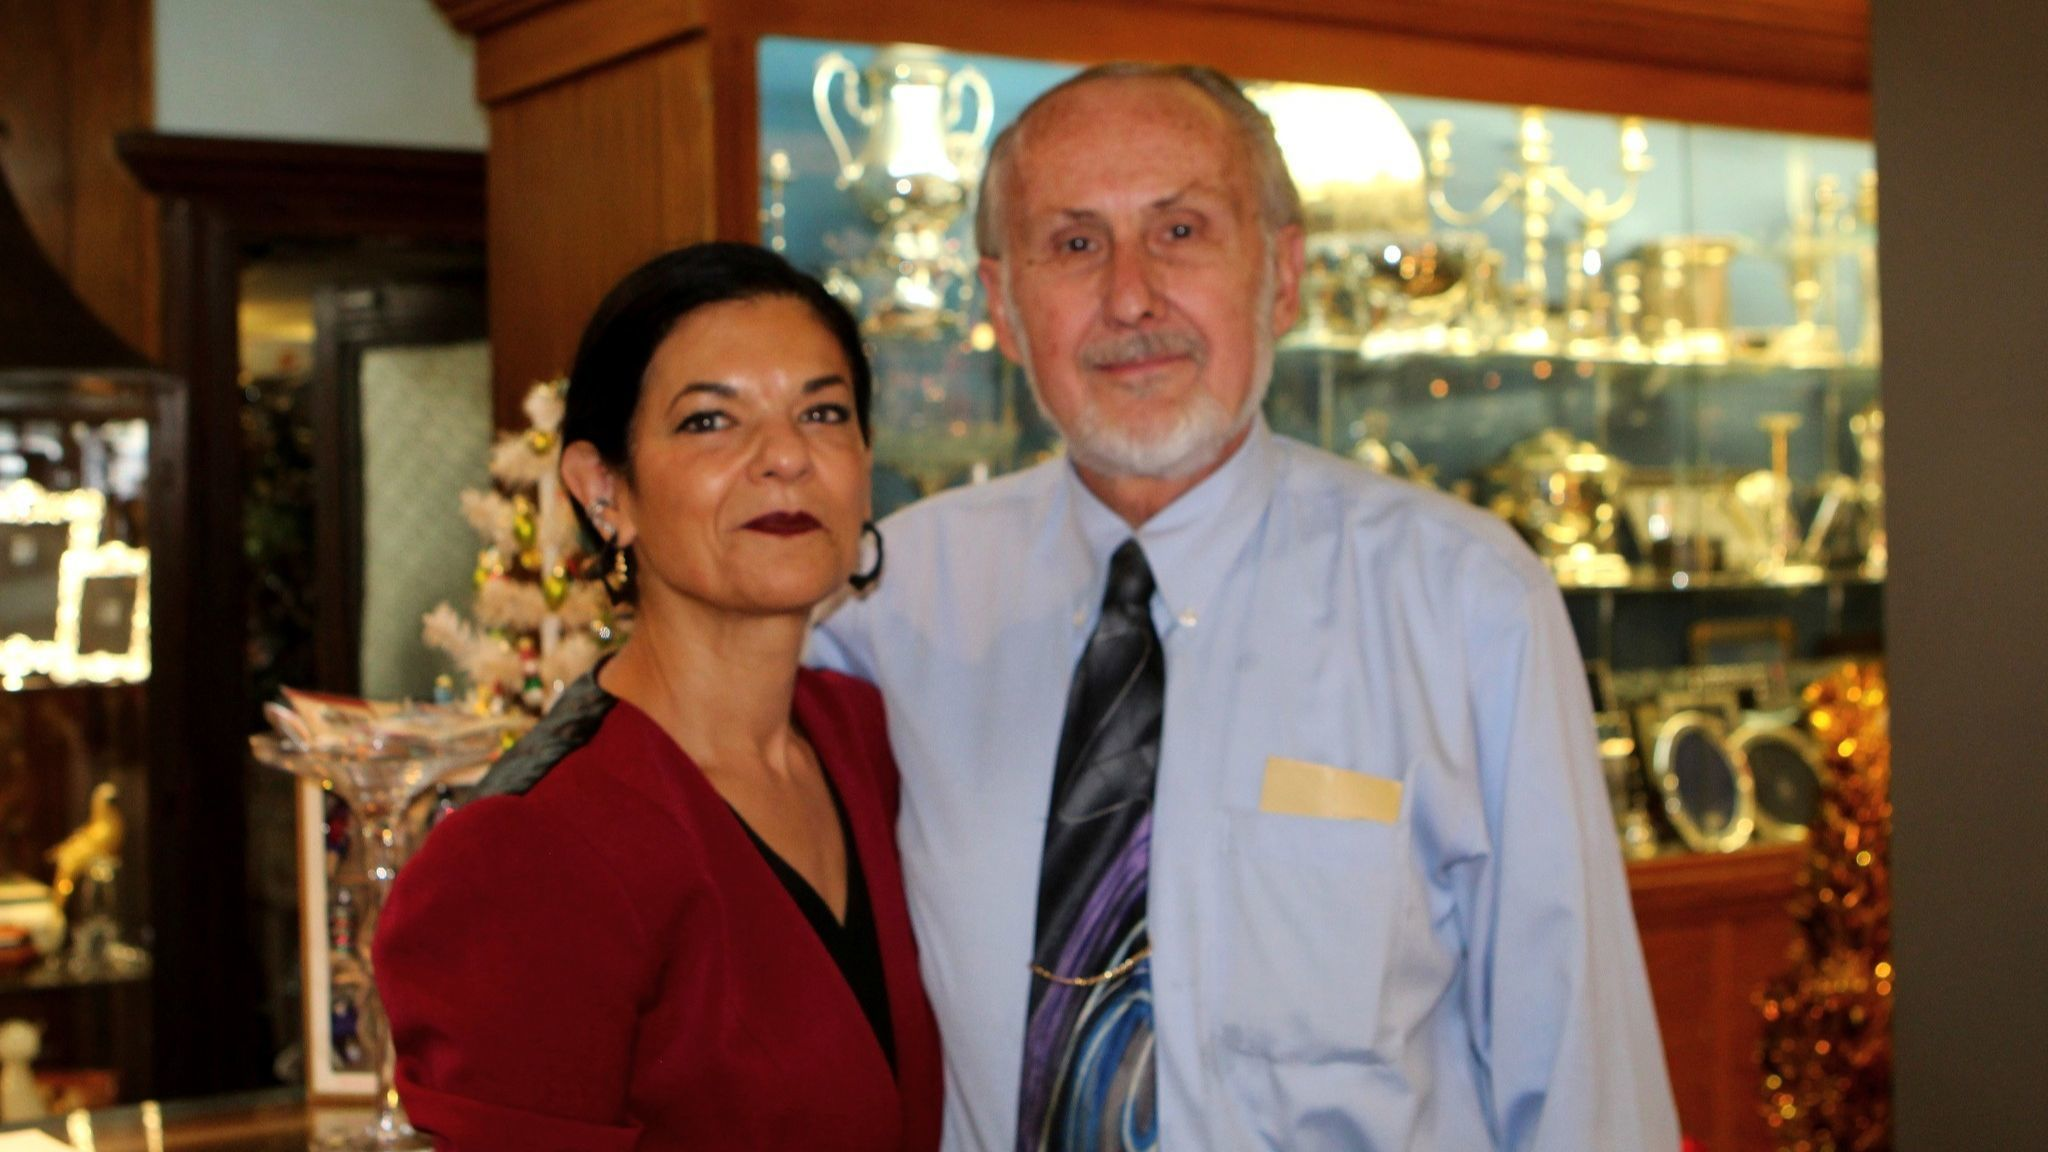 Sheila and Larry Combe, co-owners of Bowers Jewelers